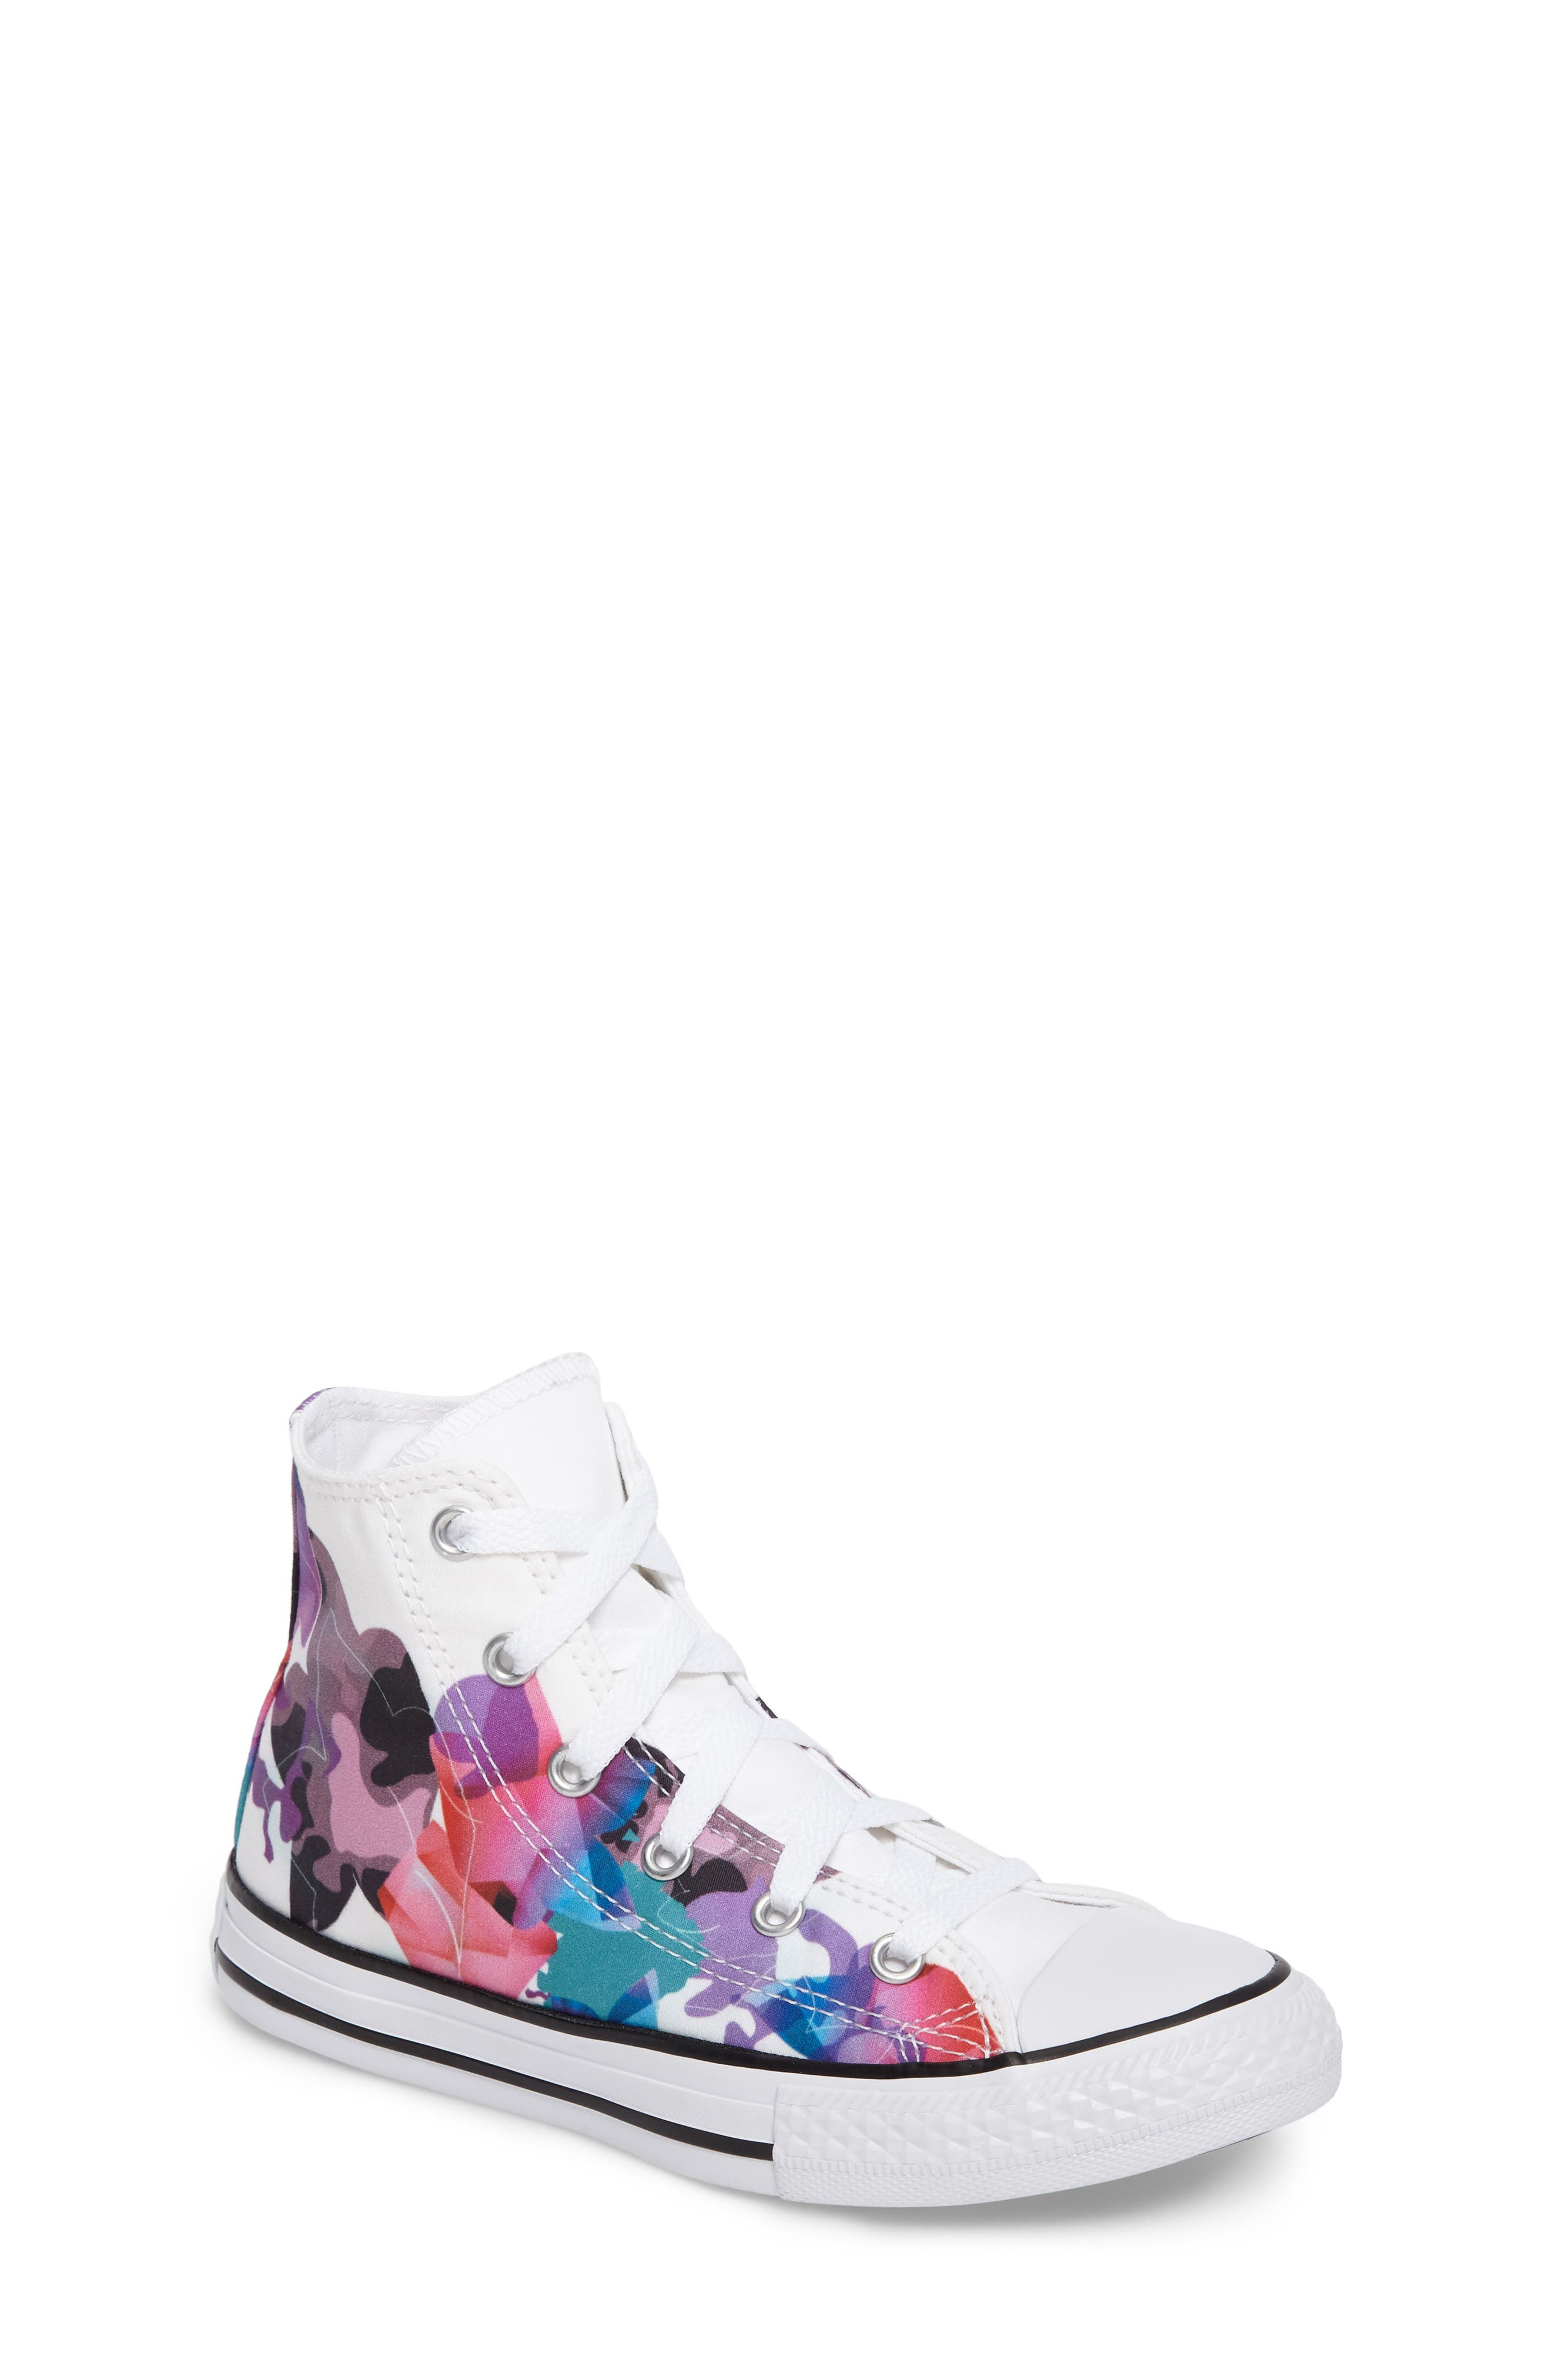 Converse Chuck Taylor® All Star® Print High Top Sneaker (Toddler, Little Kid & Big Kid)